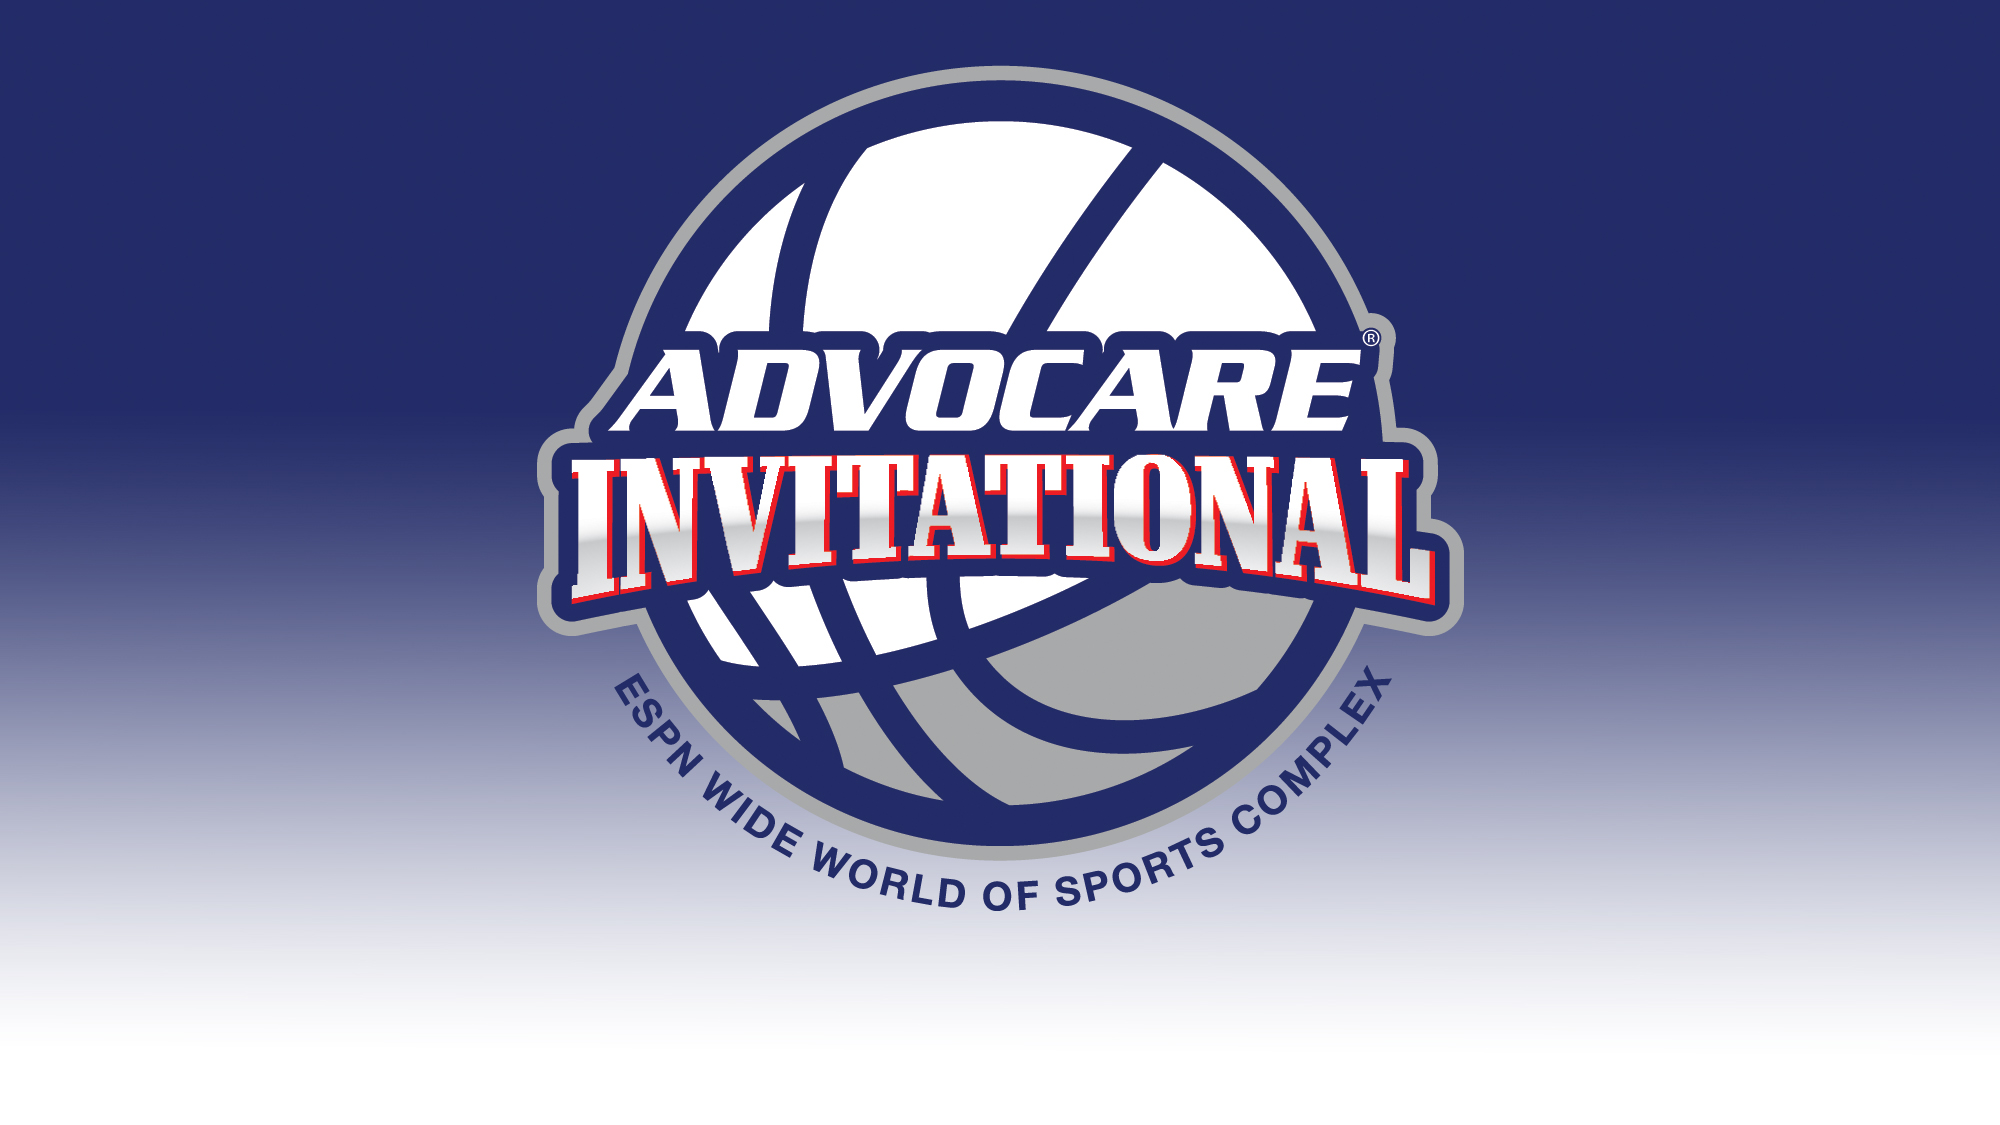 Cougars To Face LSU In First Round Of AdvoCare Invitational - College of Charleston Athletics